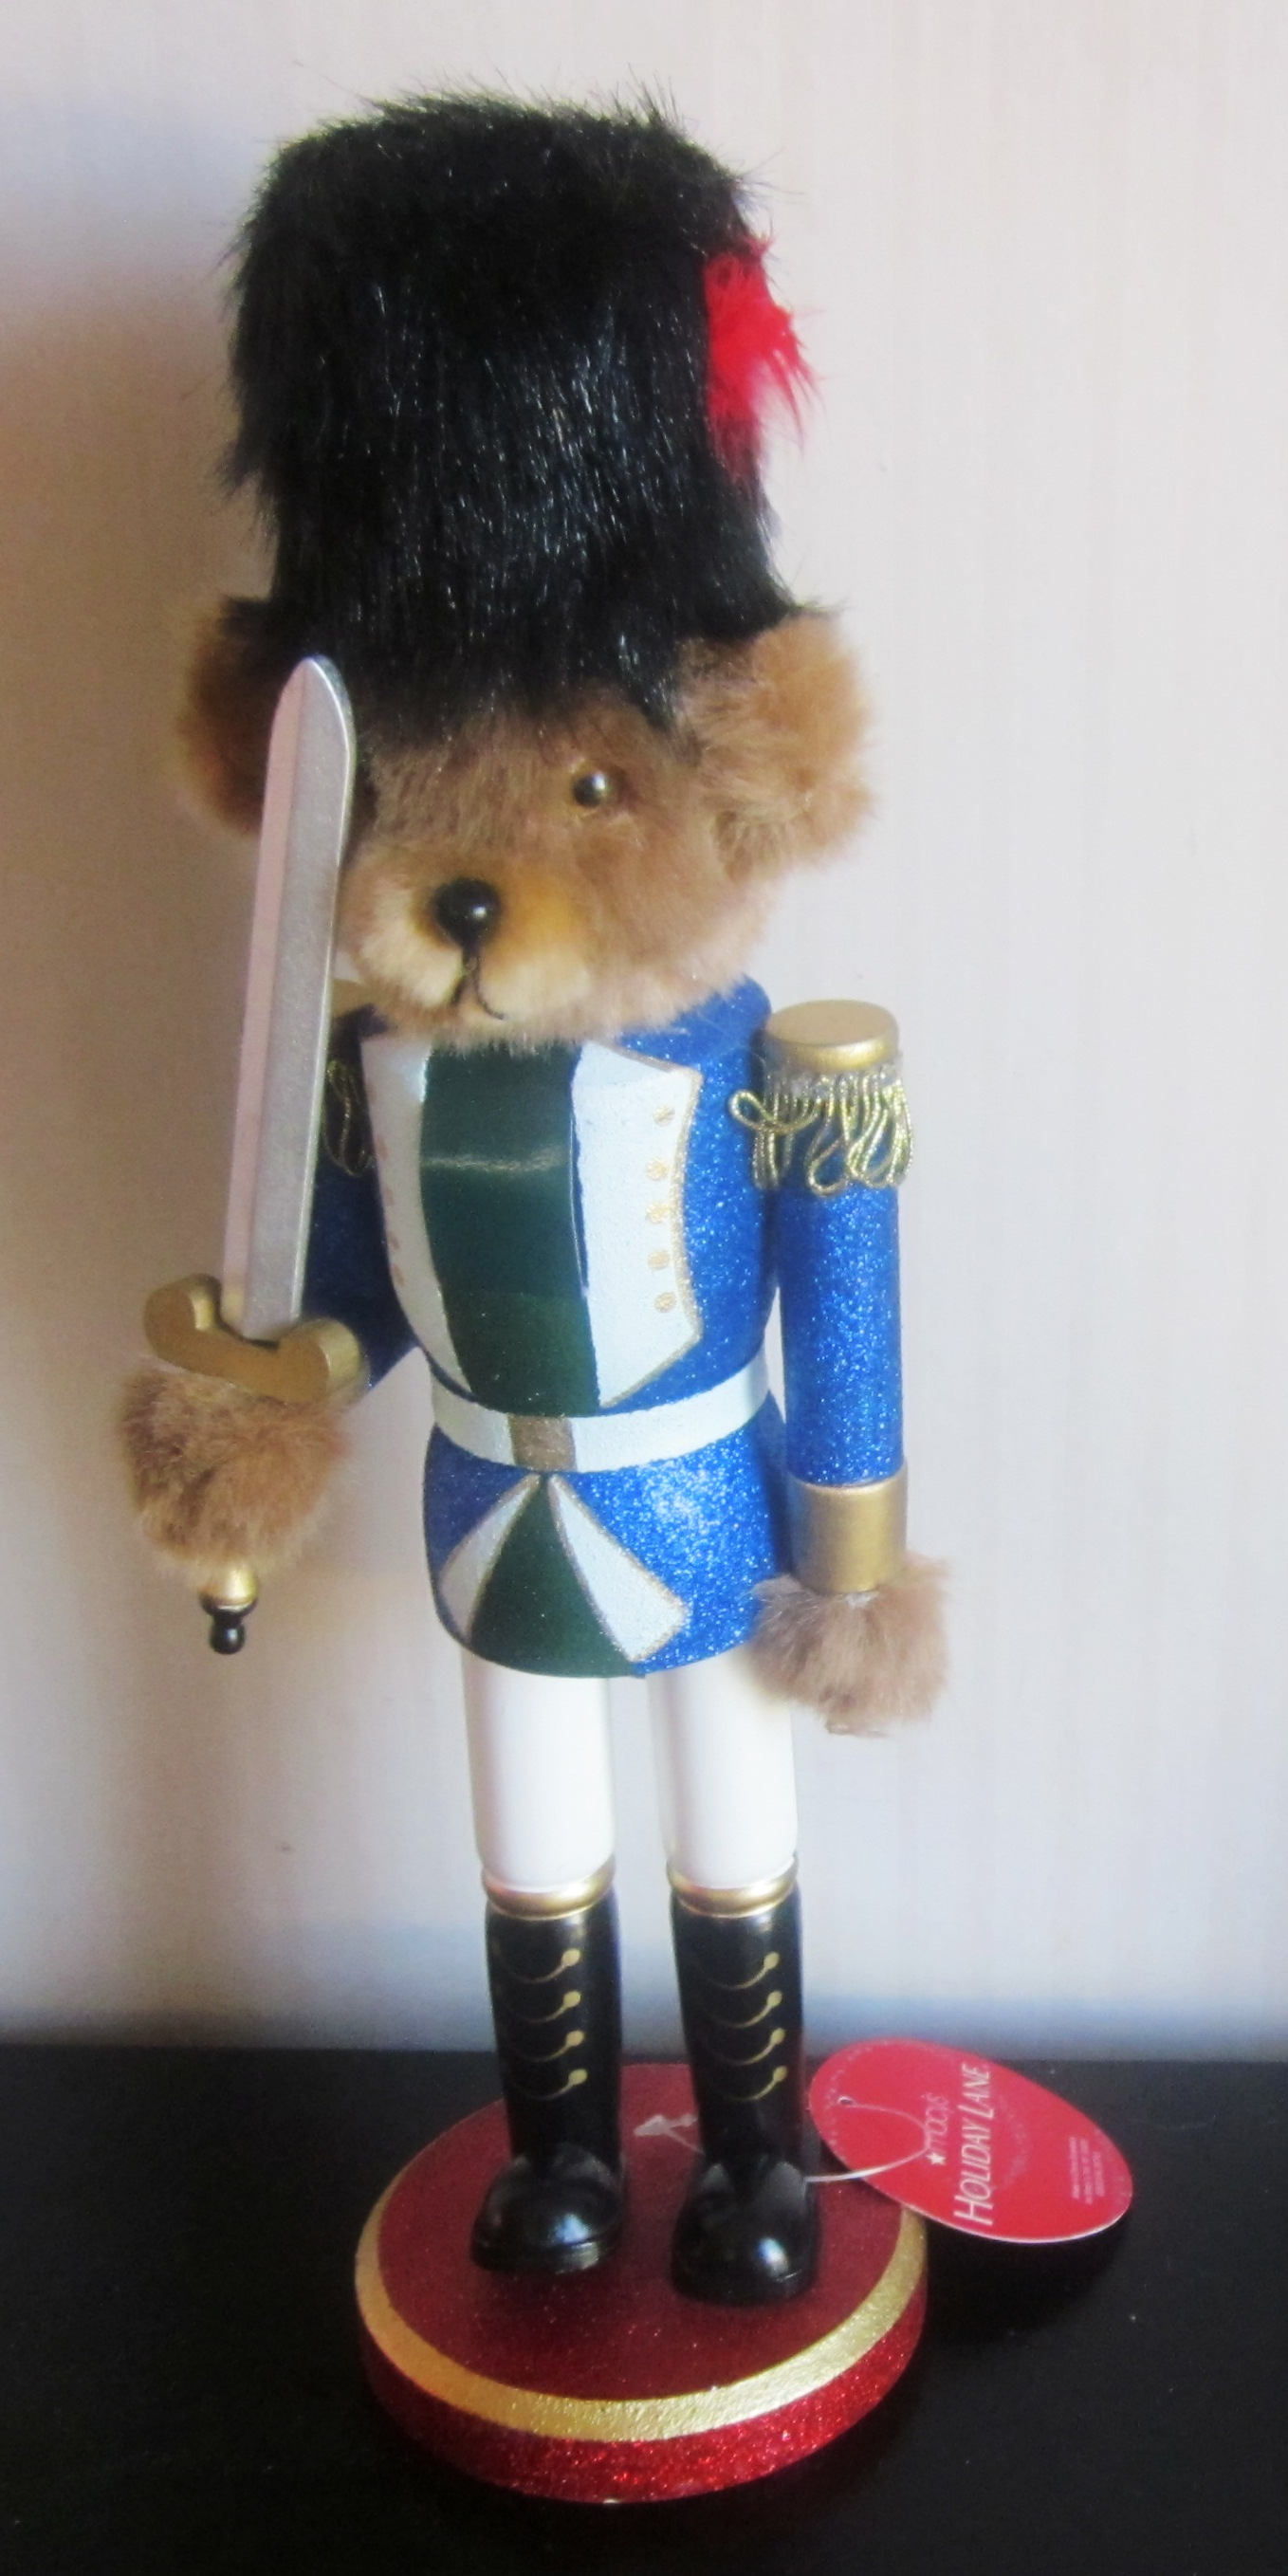 "Macy's 14"" Nutcracker Bear"